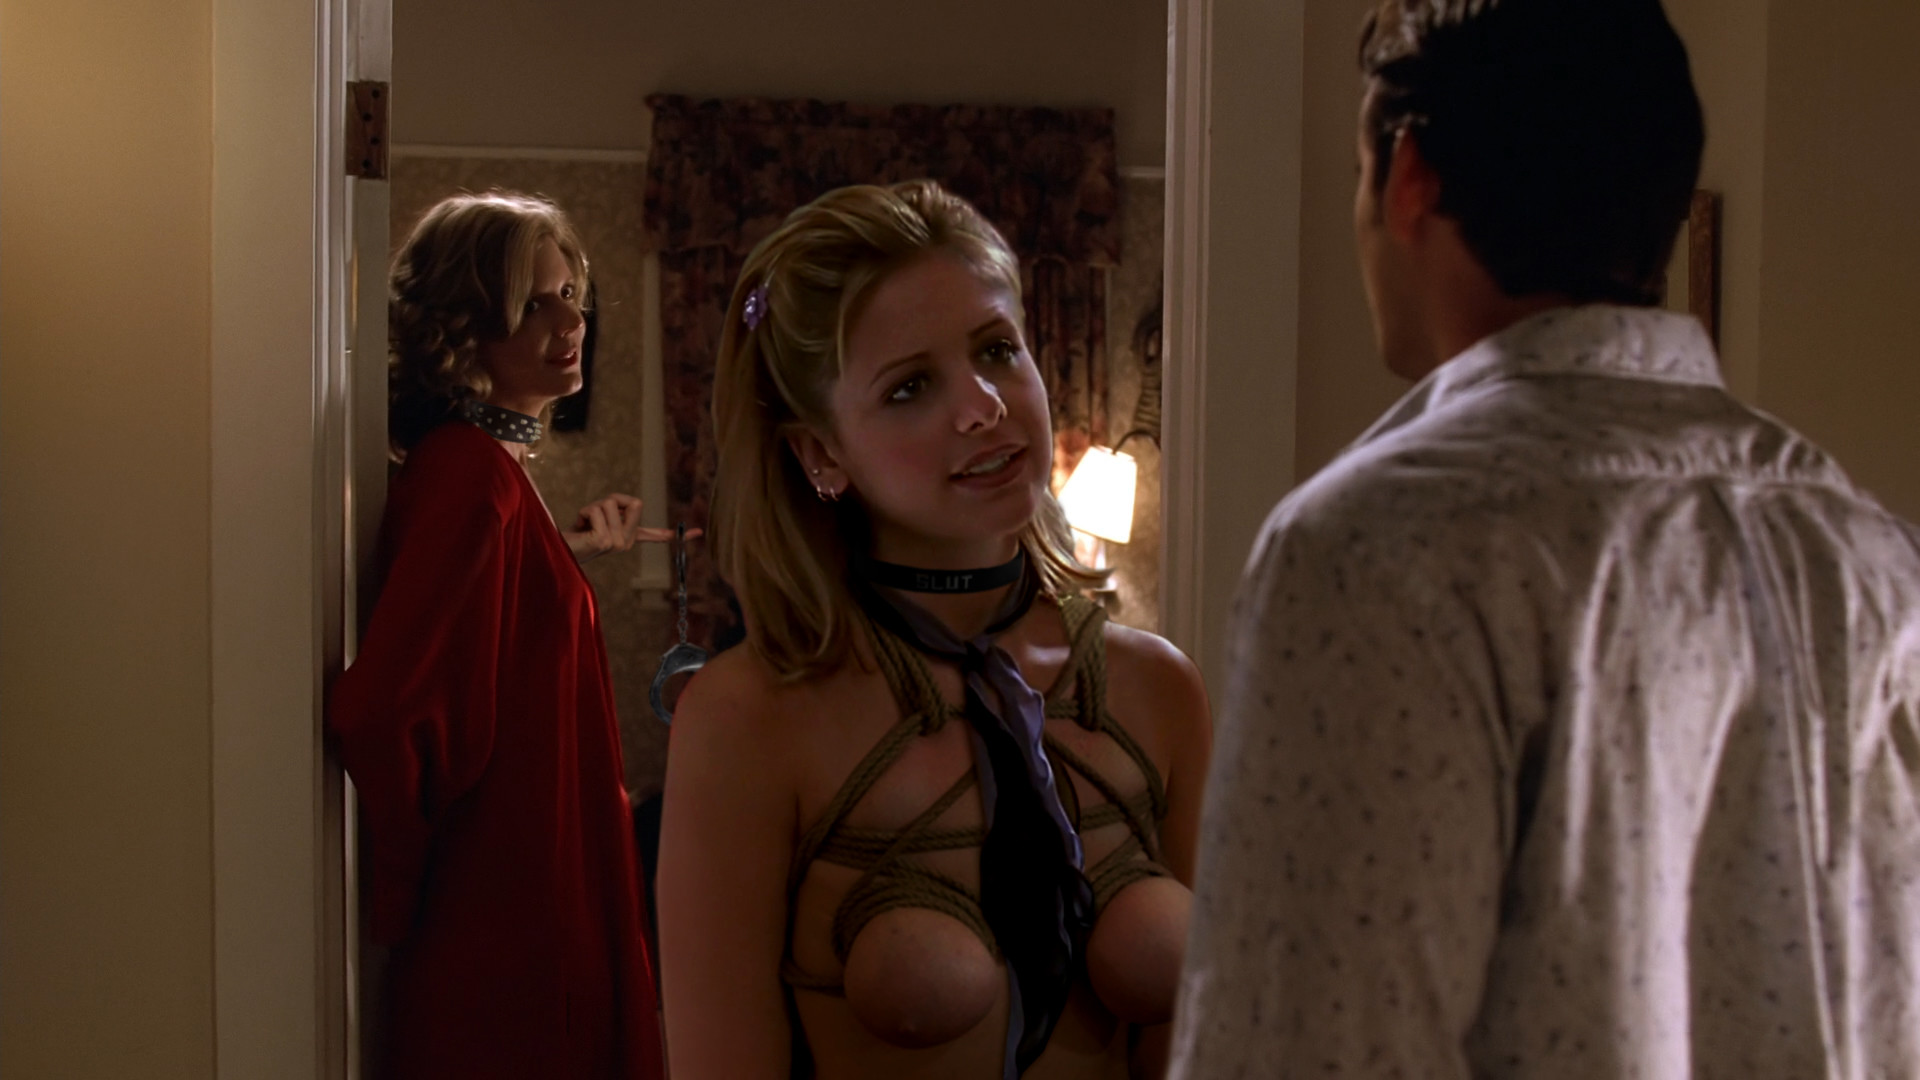 Puffy nipples in buffy naked the vampire slayer #15